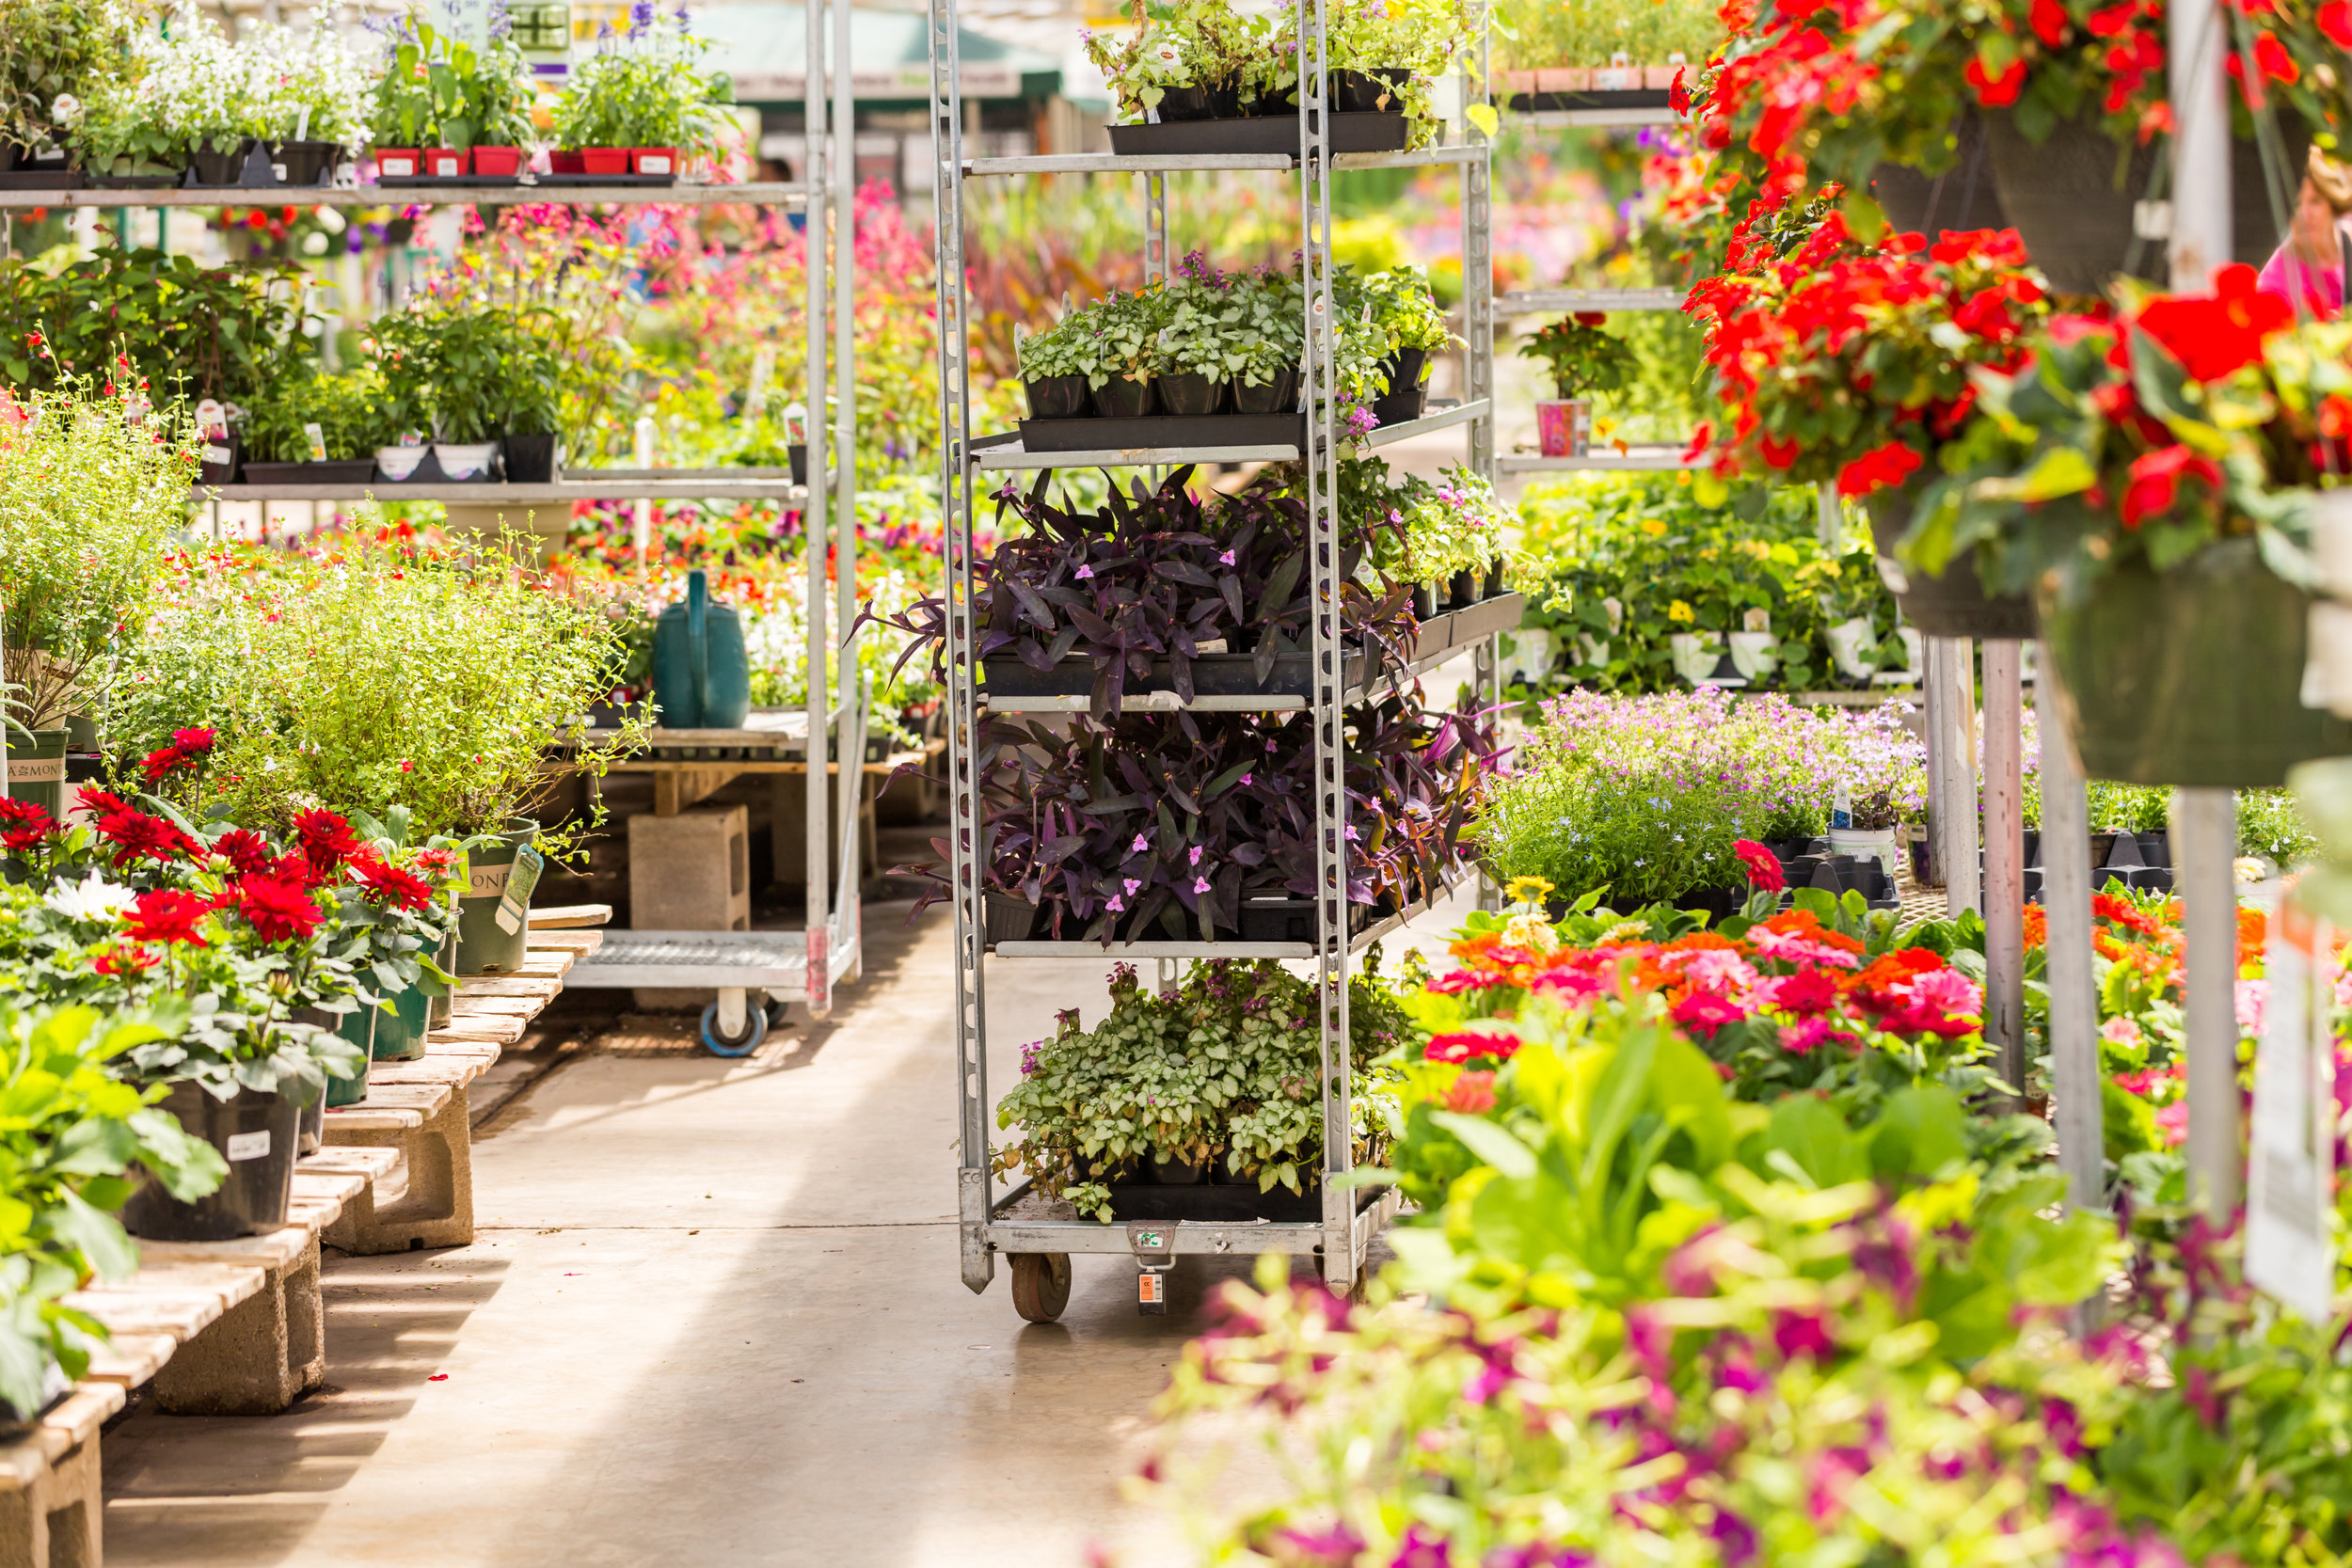 Benefits of Getting All of Your Landscape Supplies at a Wholesale Nursery in Sussex County, NJ